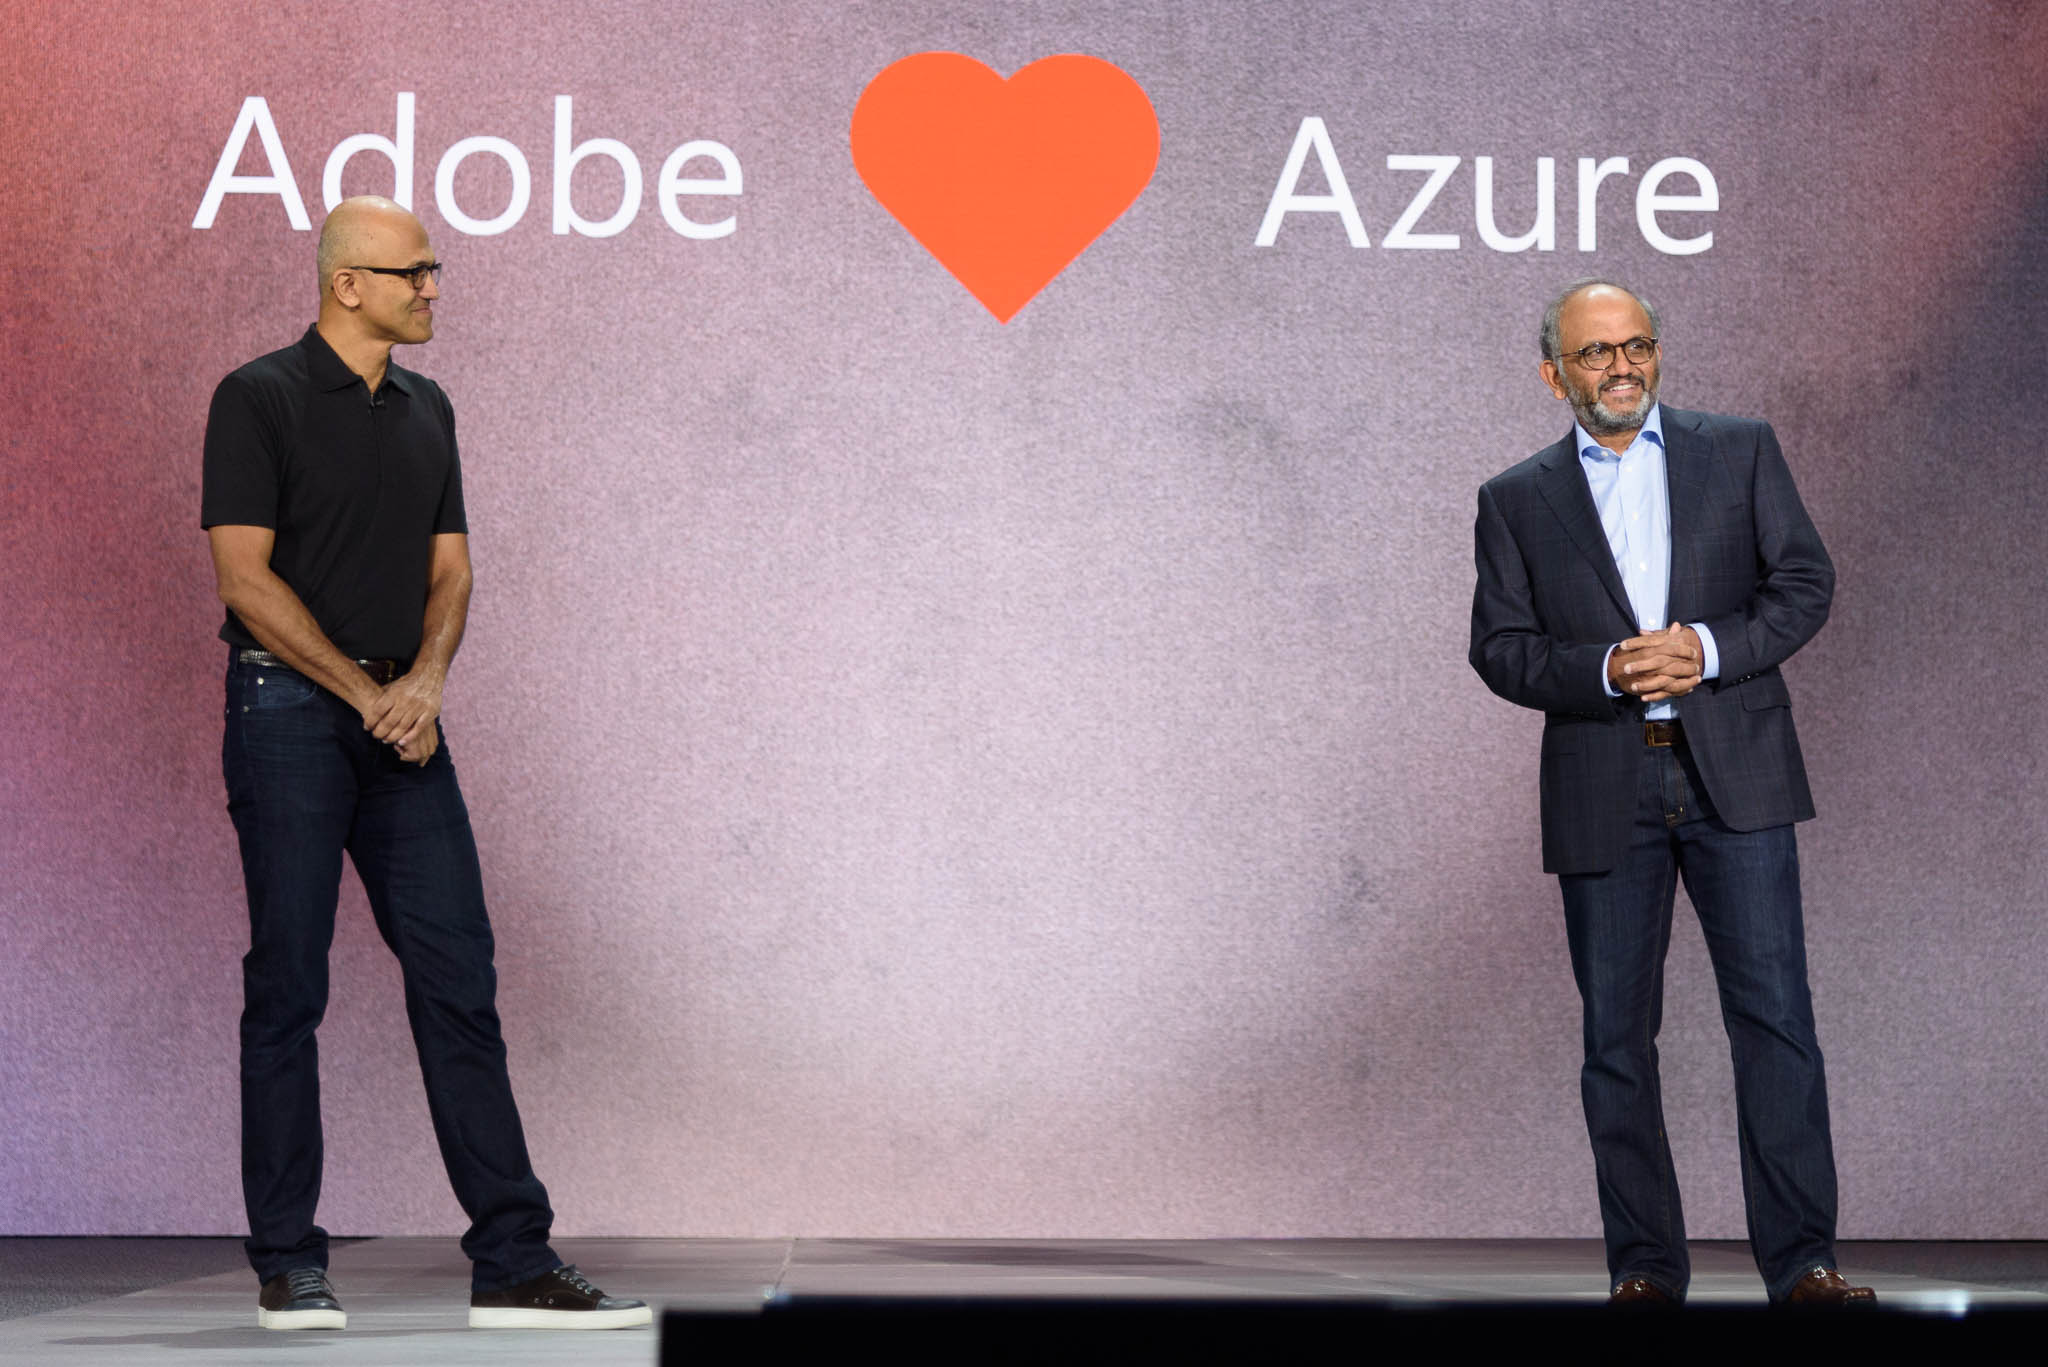 Microsoft and Adobe team up to take on Salesforce